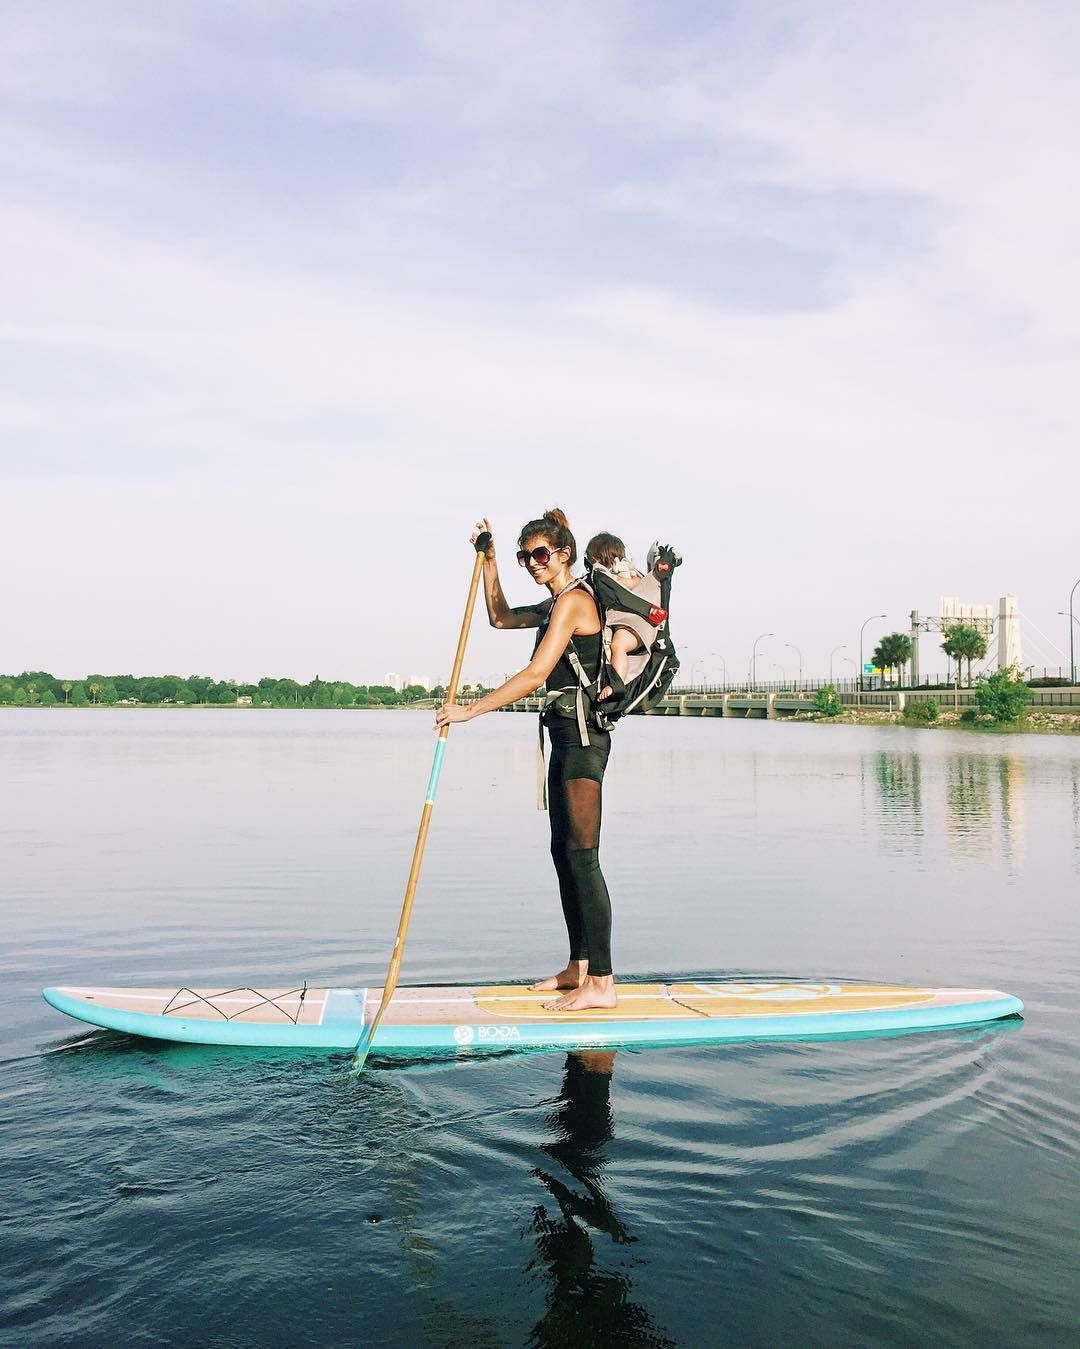 a4c92241fc By @theoutdoormom | Paddleboarding | Instagram, Instagram posts ...